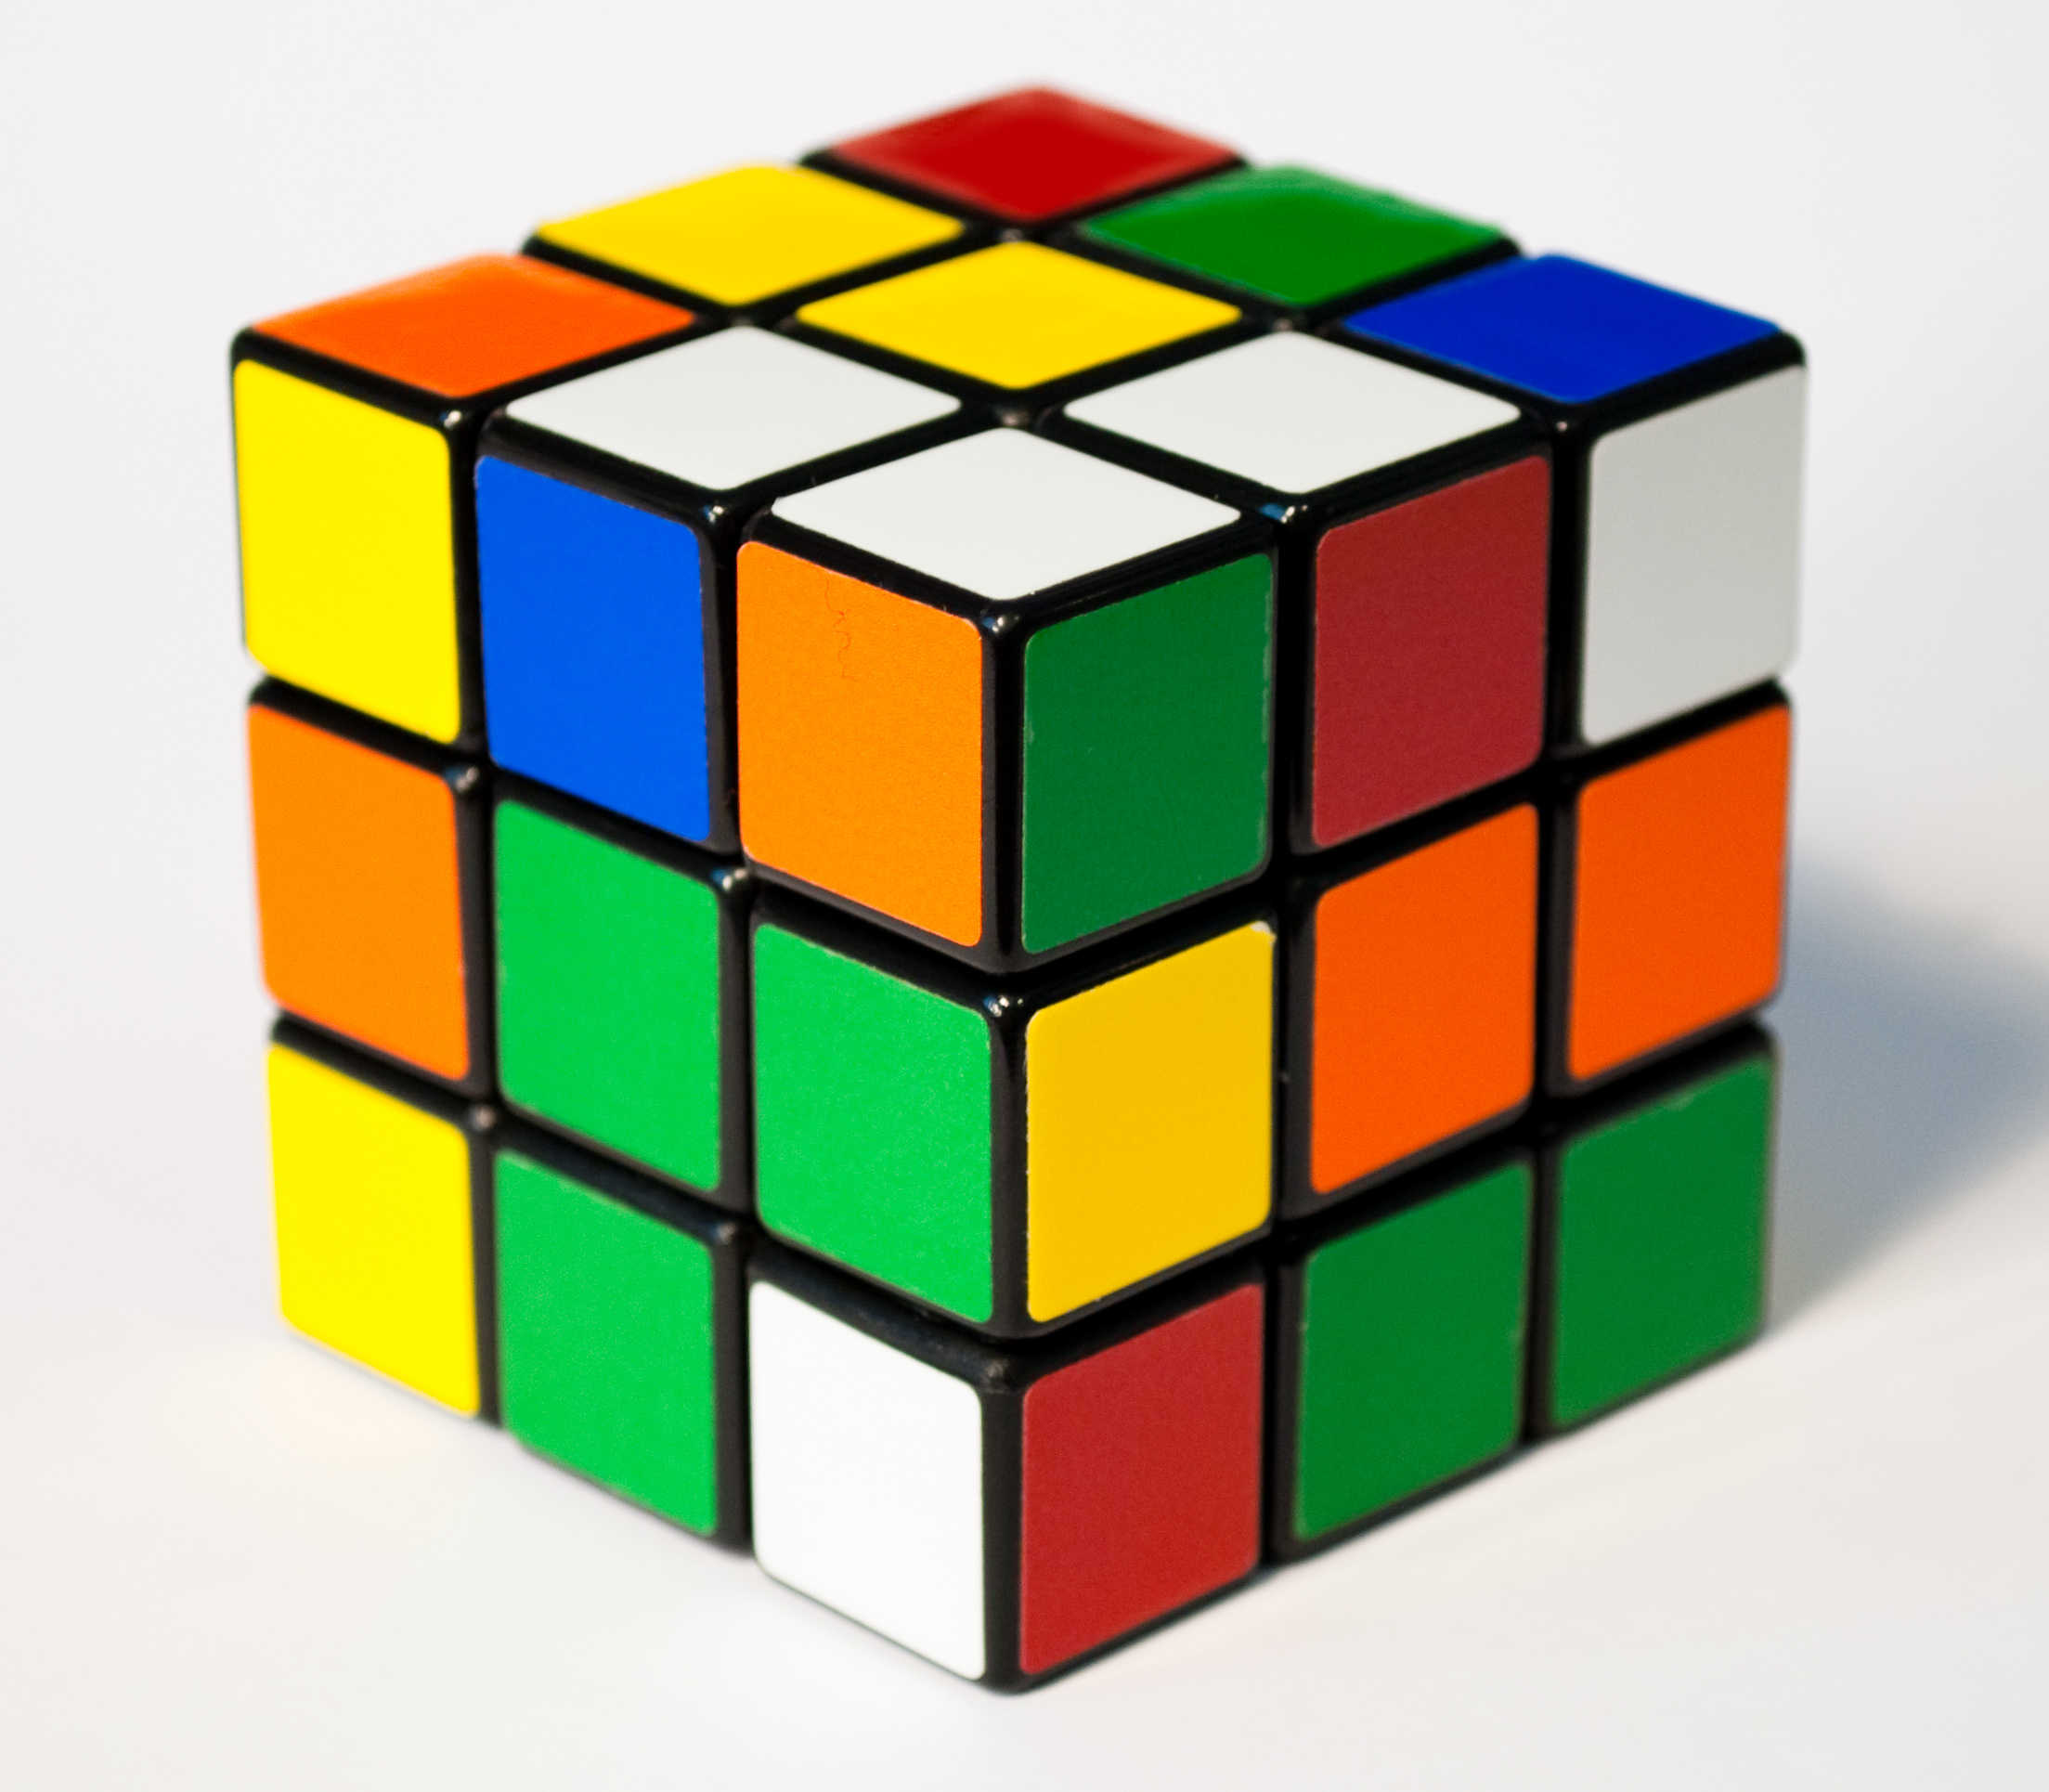 Rubik s Cube Simulator and Solver - File Exchange - MATLAB Central